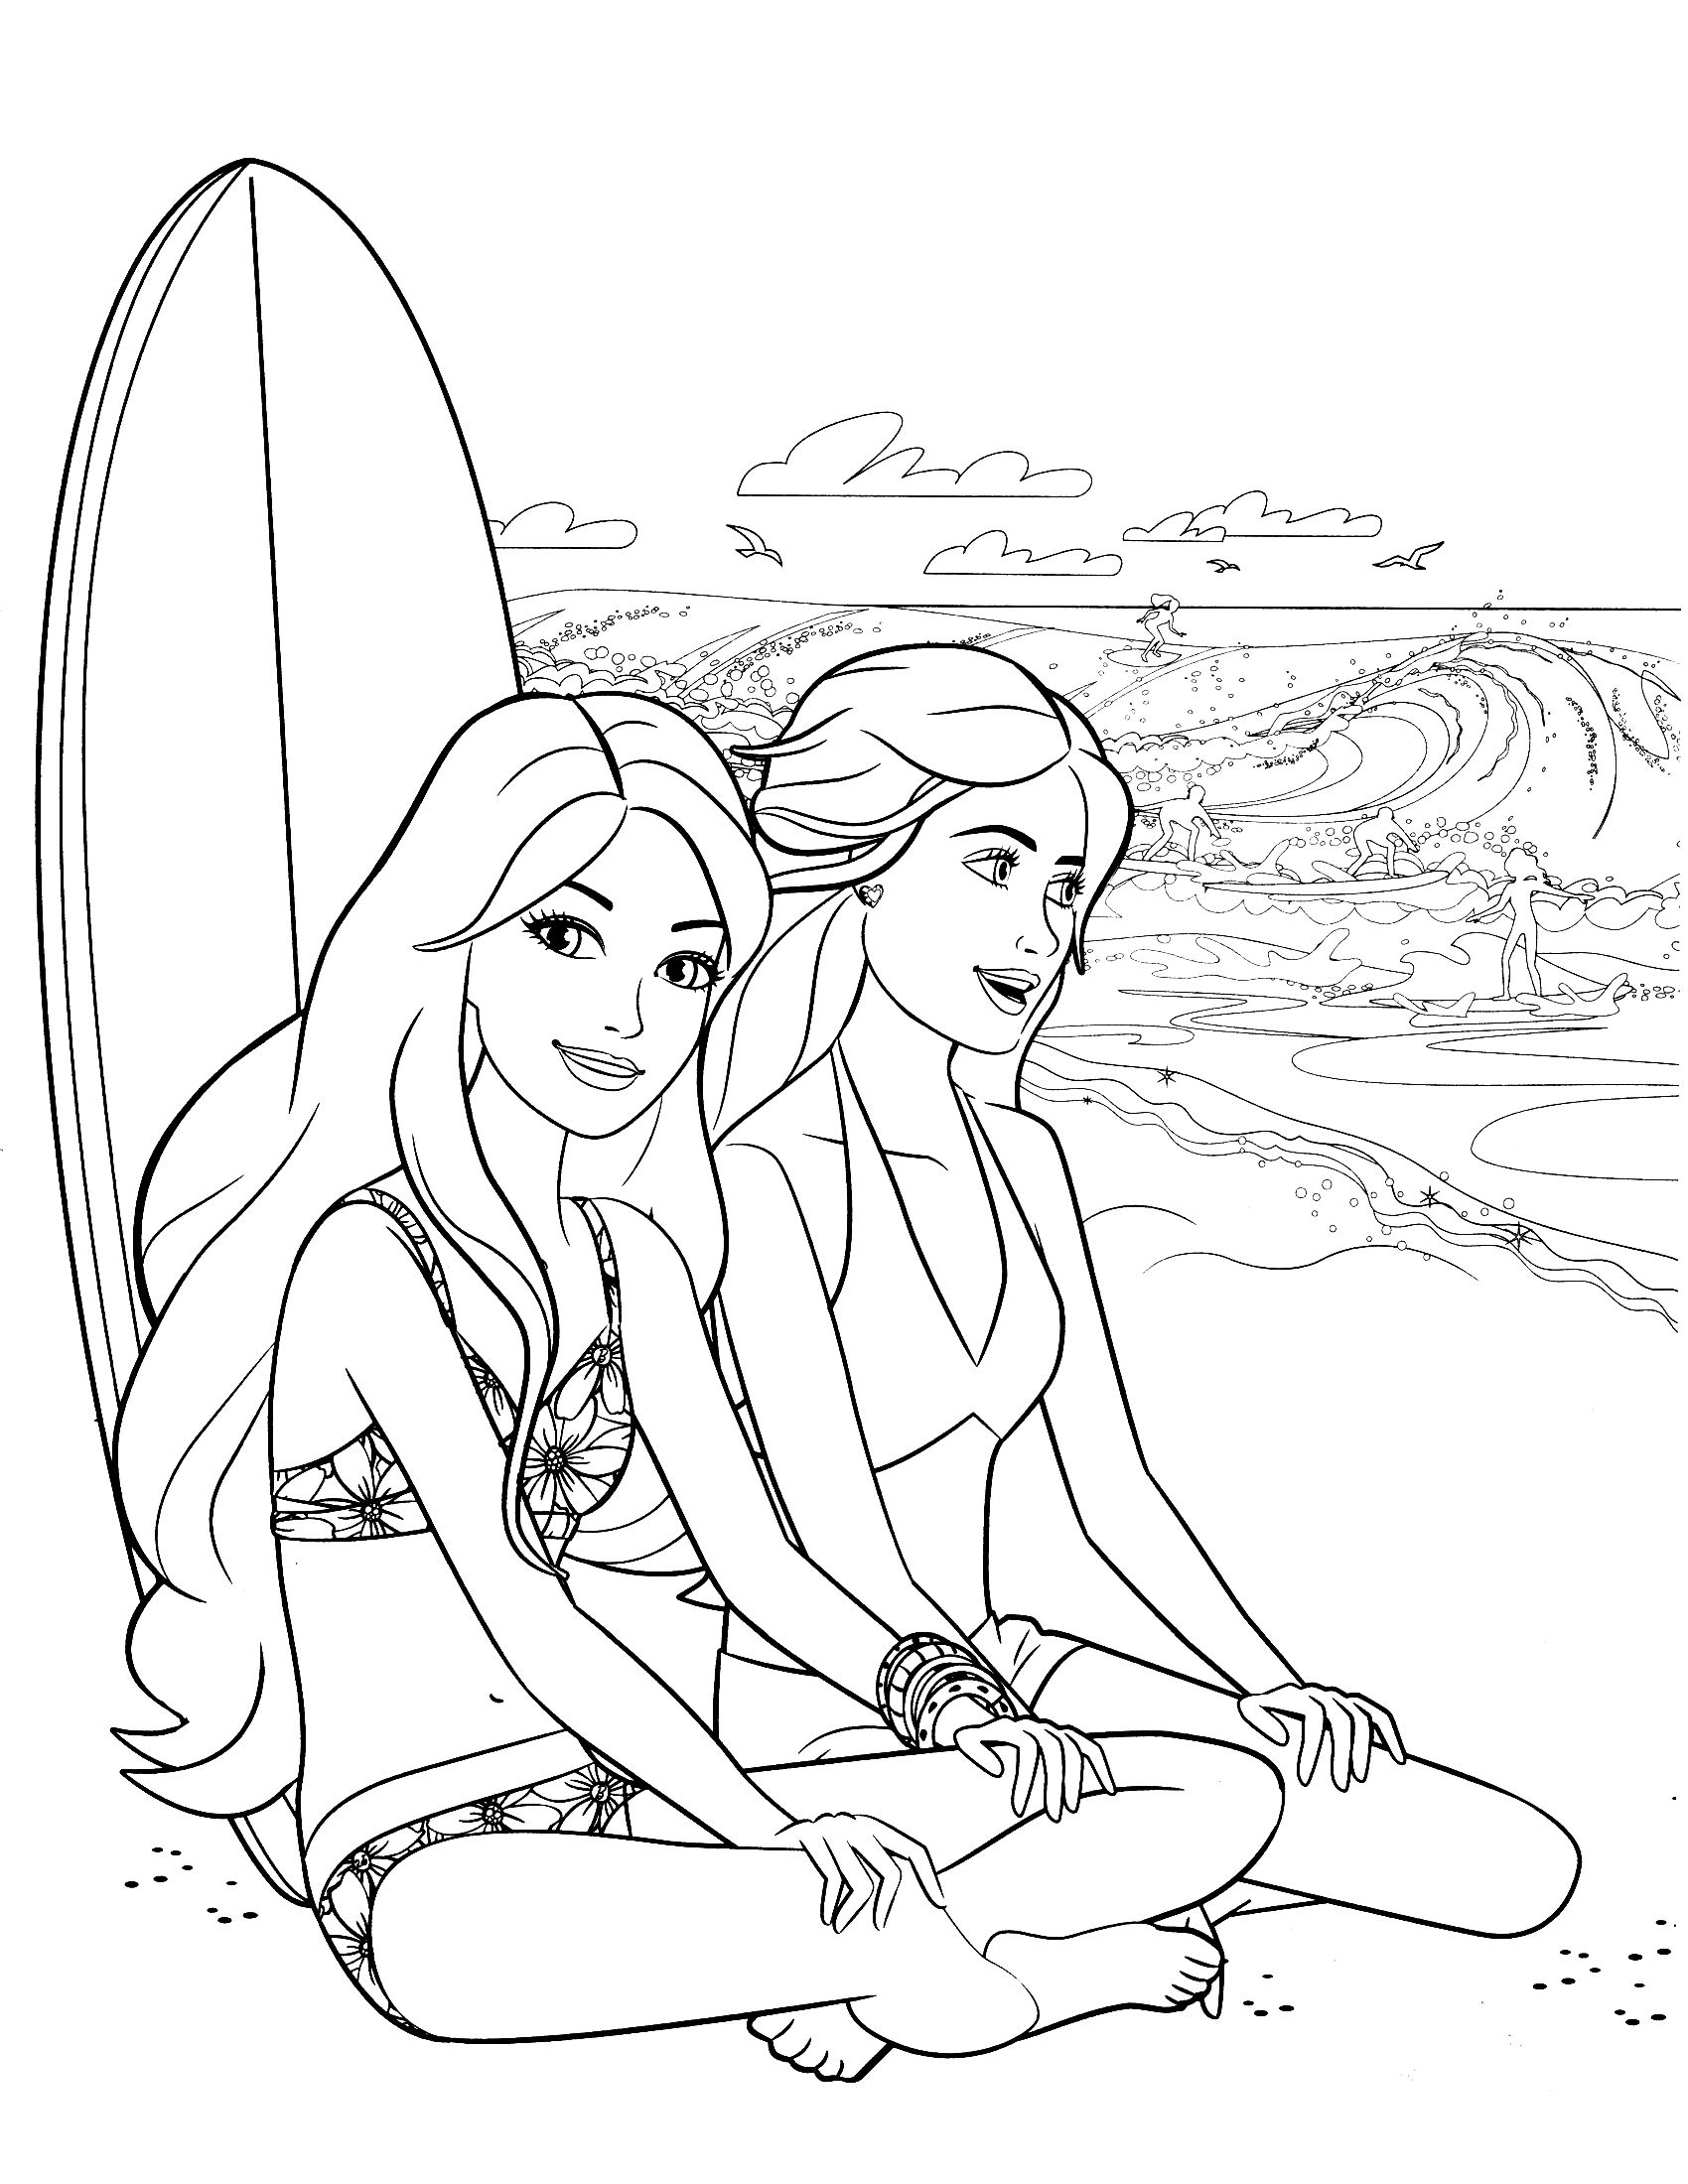 570 Barbie Beach Coloring Pages  Images